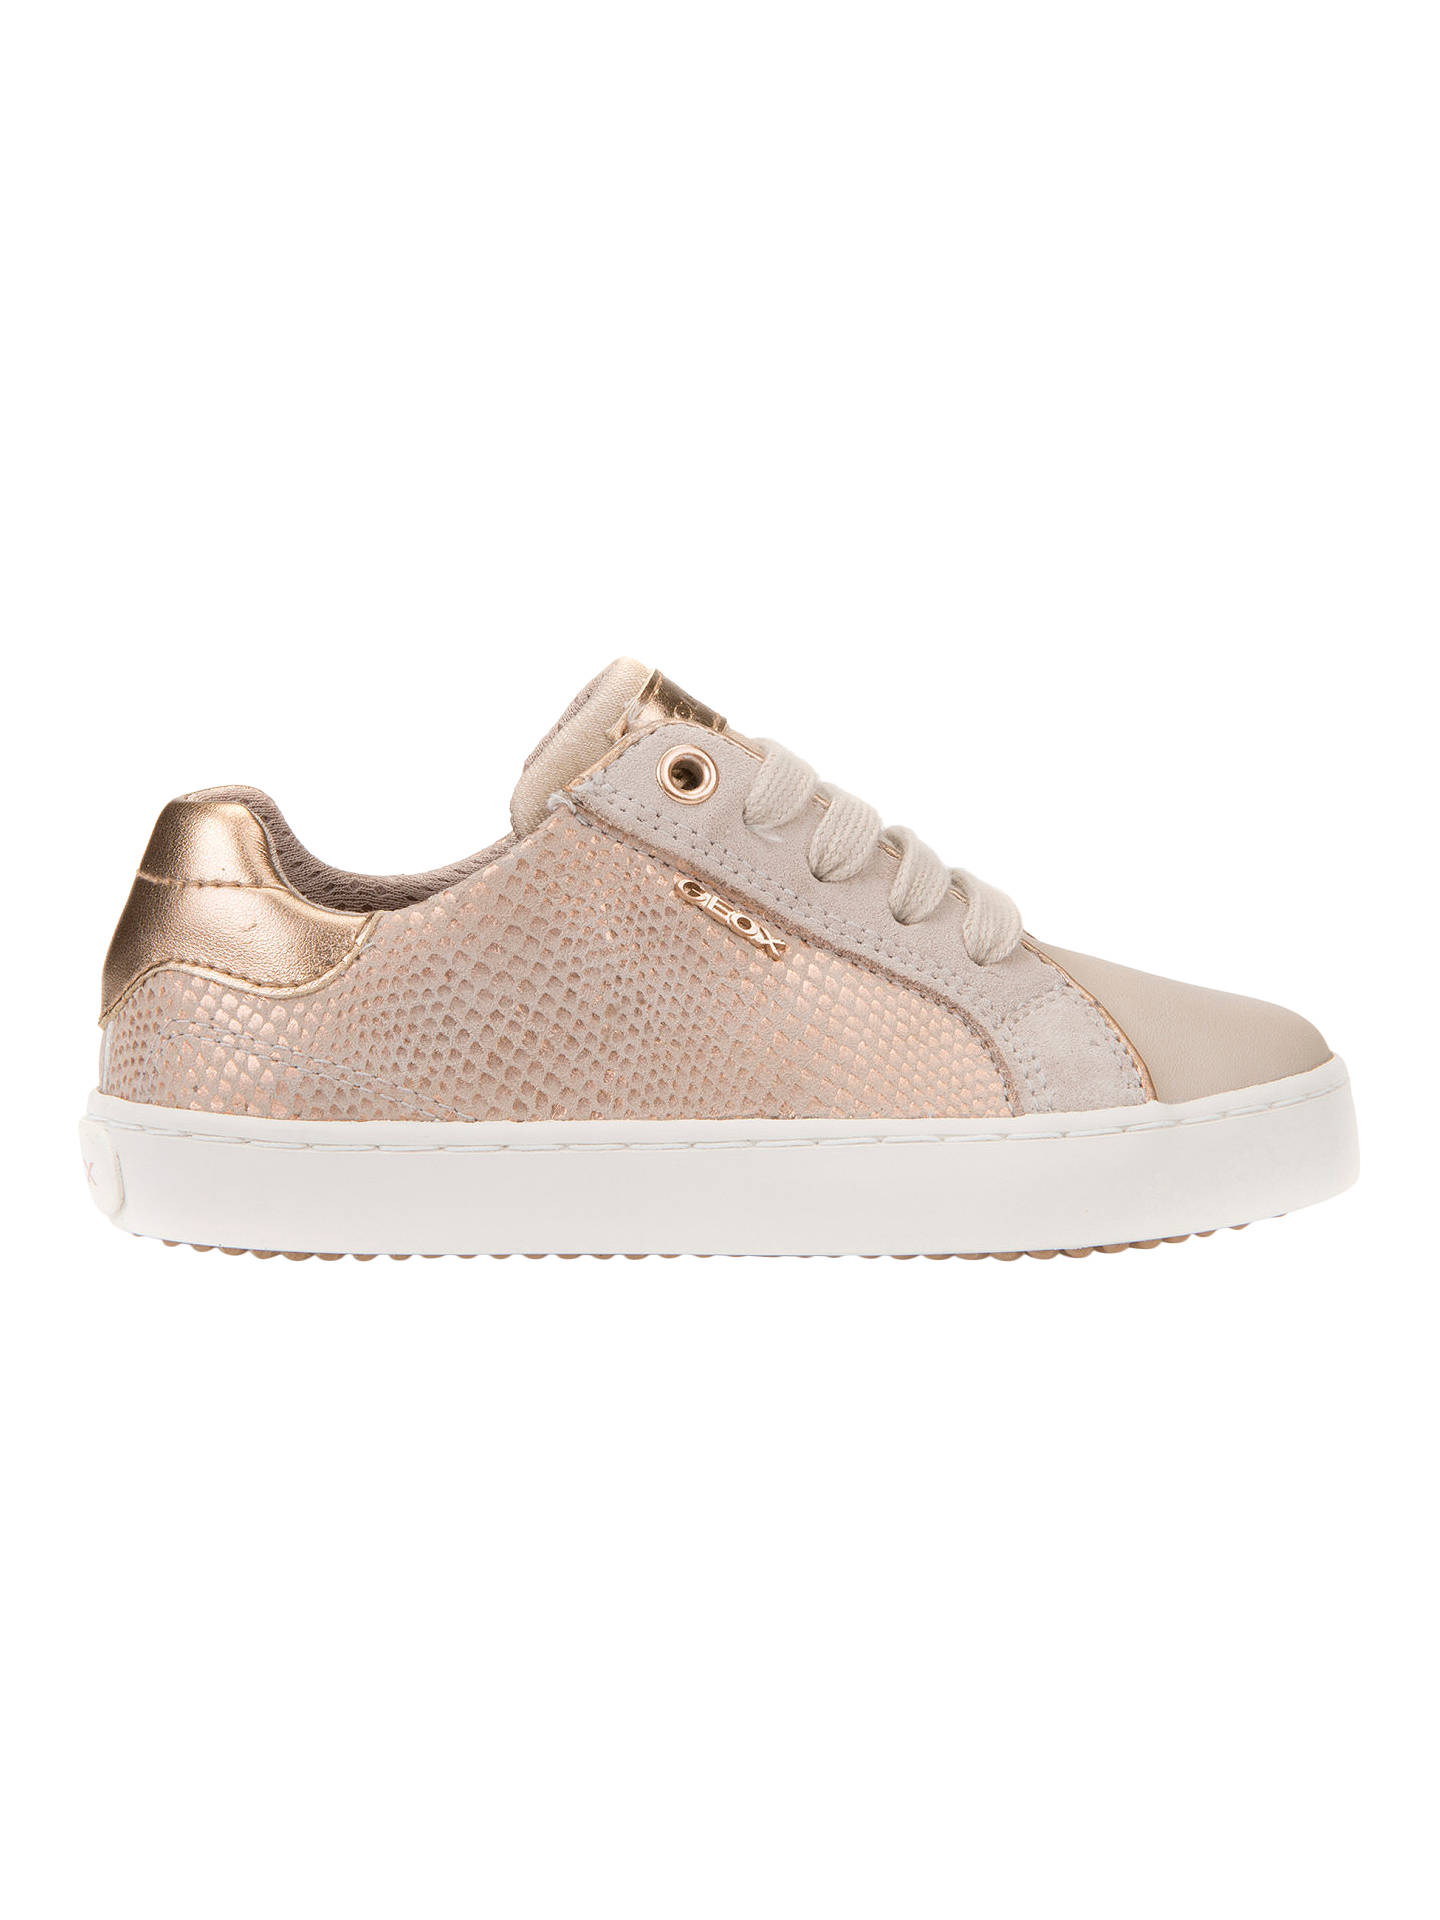 Geox J Kiwi G Girls Leather Trainers Hi Tops Silver at